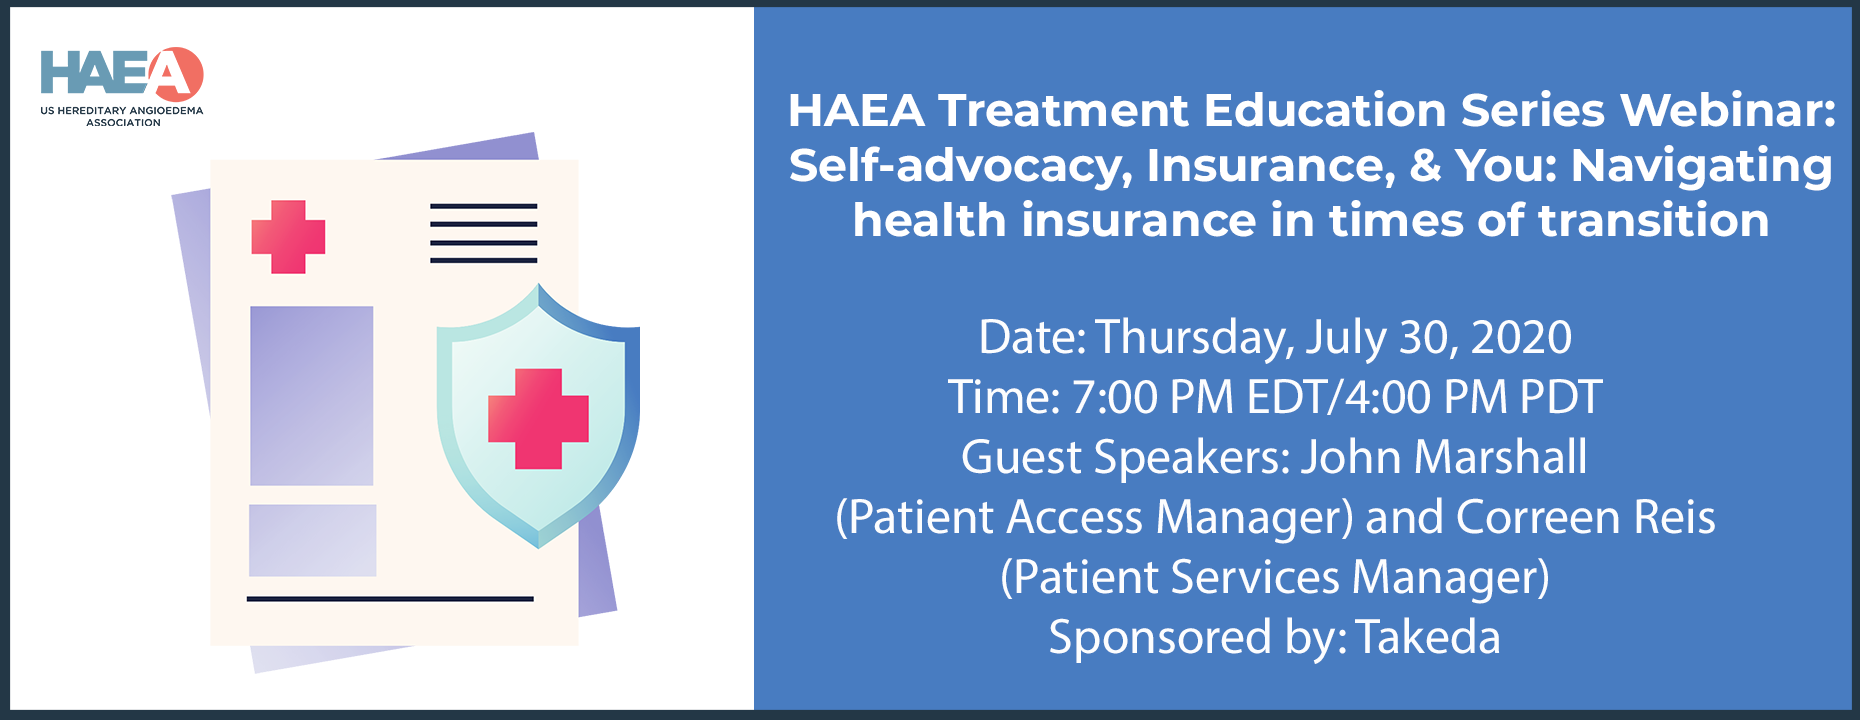 HAEA Treatment Education Series Webinar: Self-advocacy, Insurance, & You: Navigating health insurance in times of transition